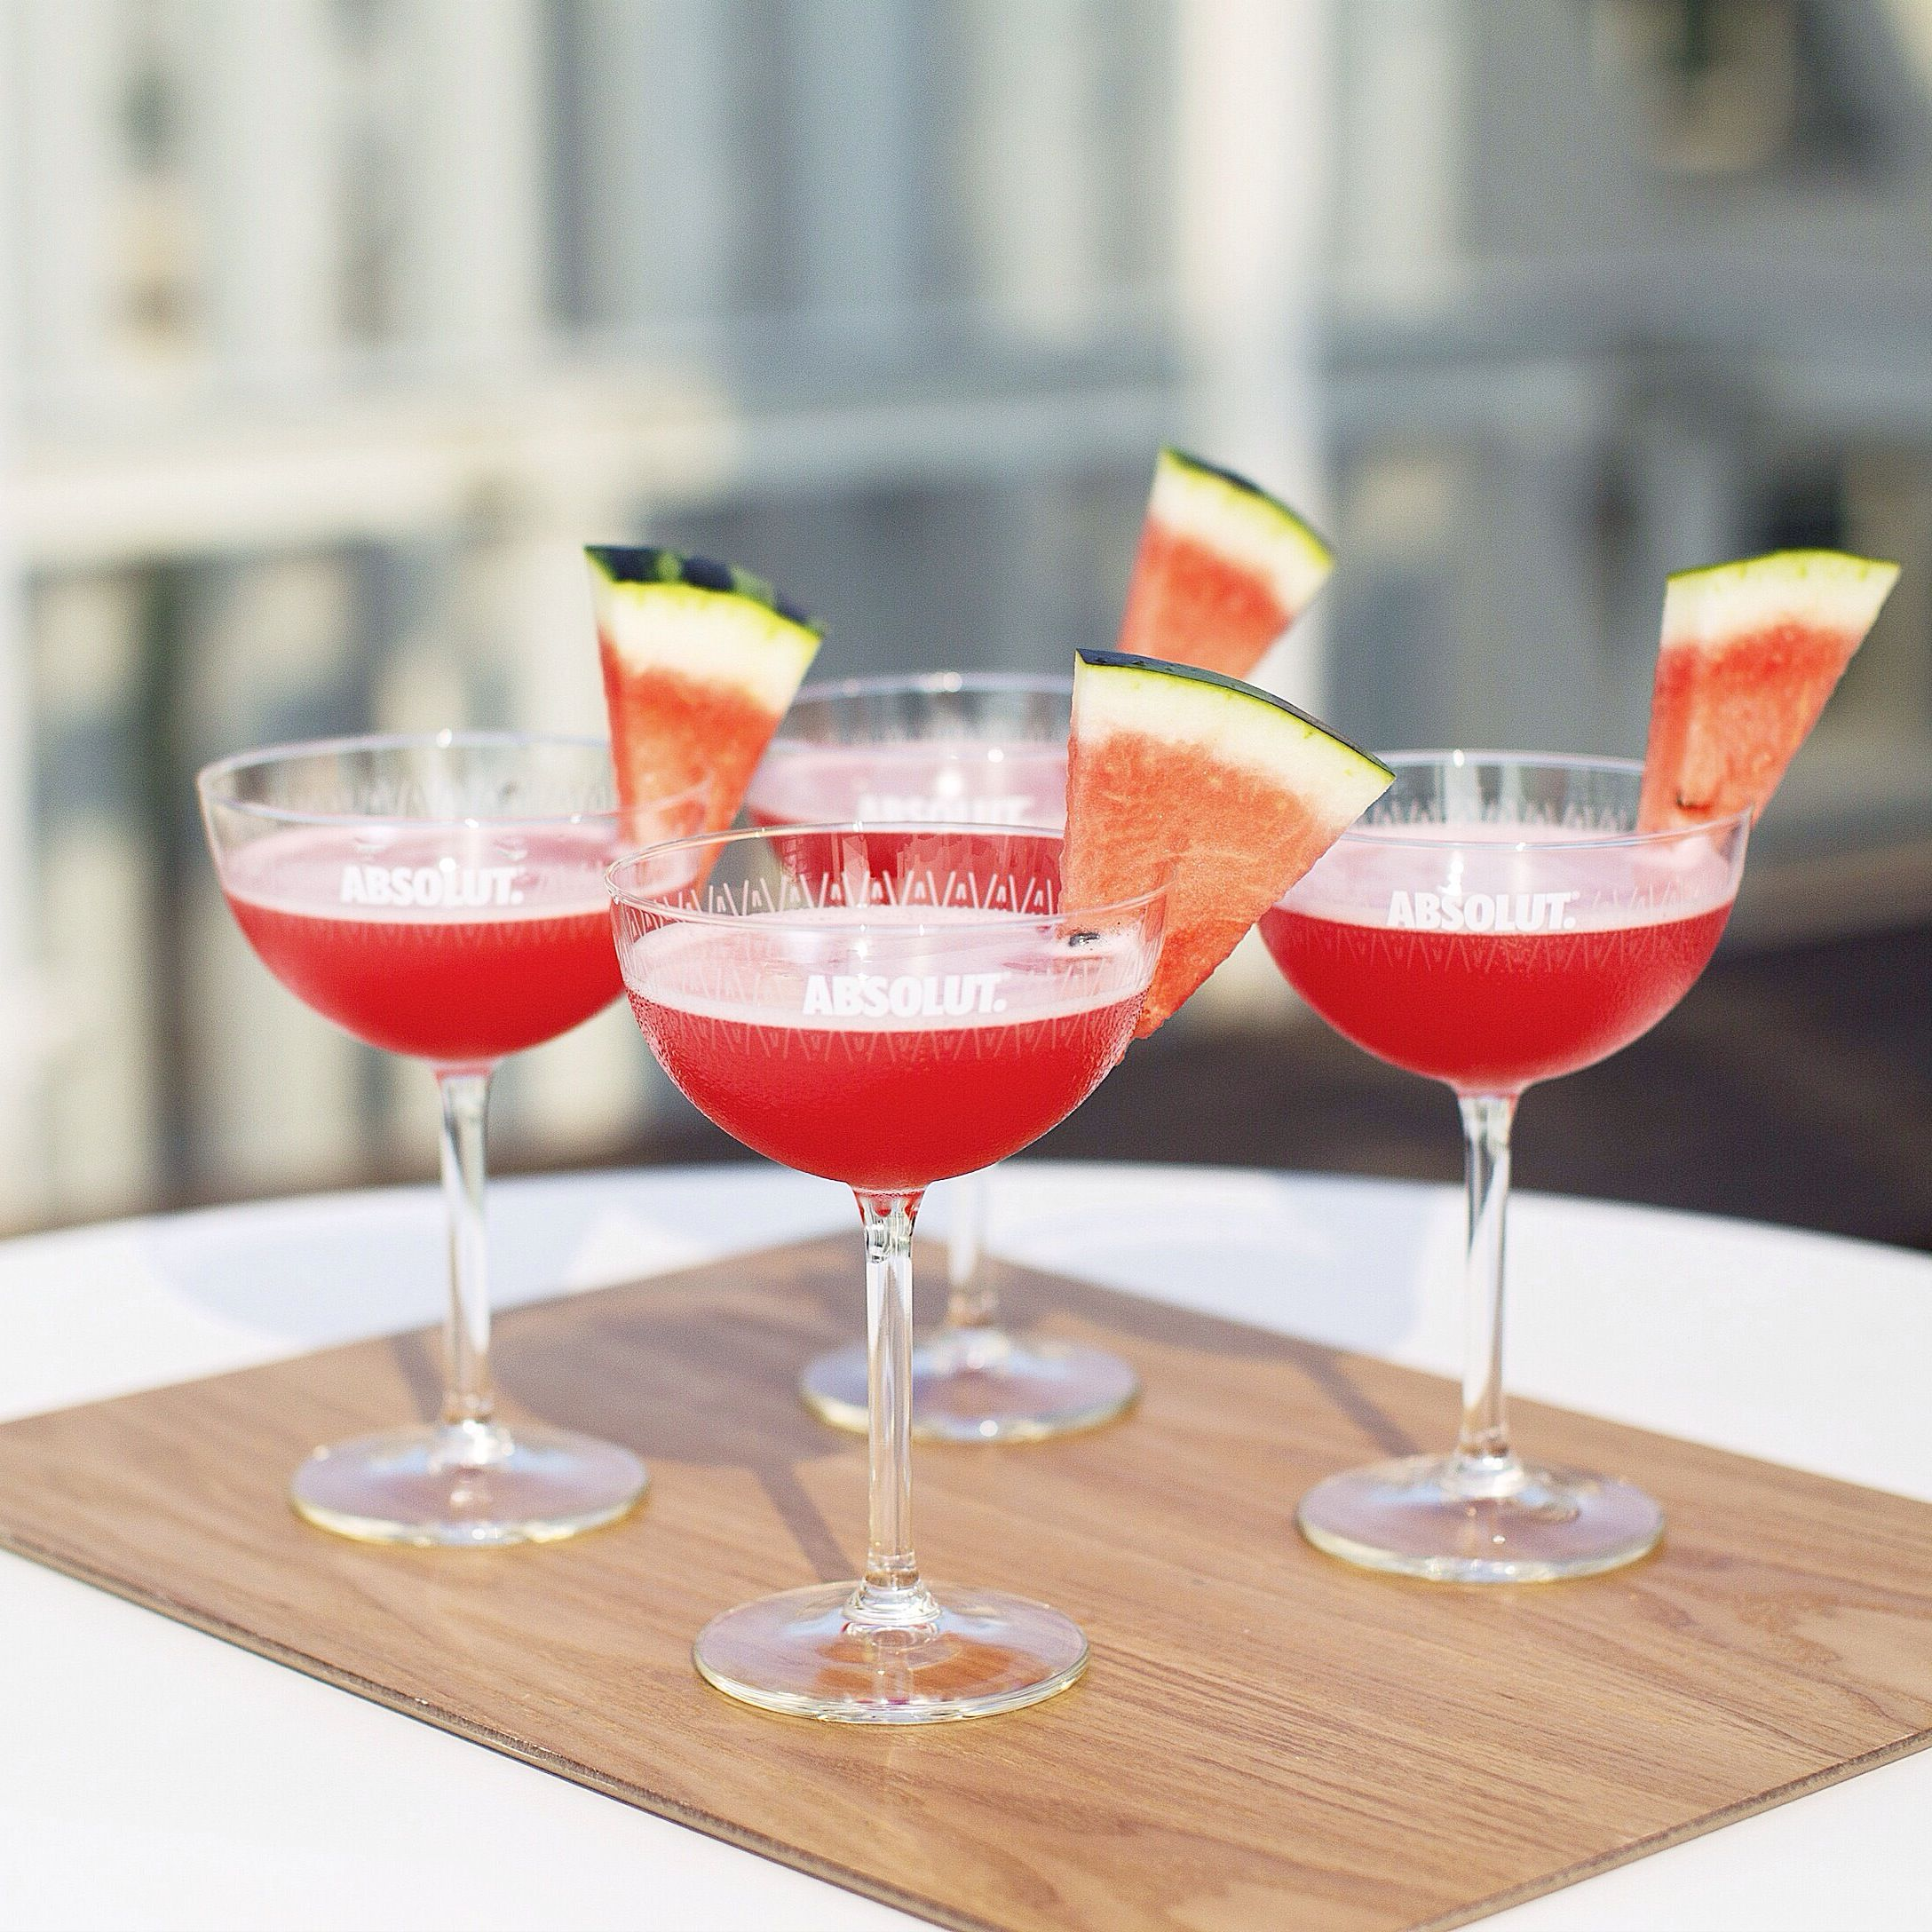 Cocktail recipes absolut watermelon martini 2 parts for Simple mix drinks with vodka